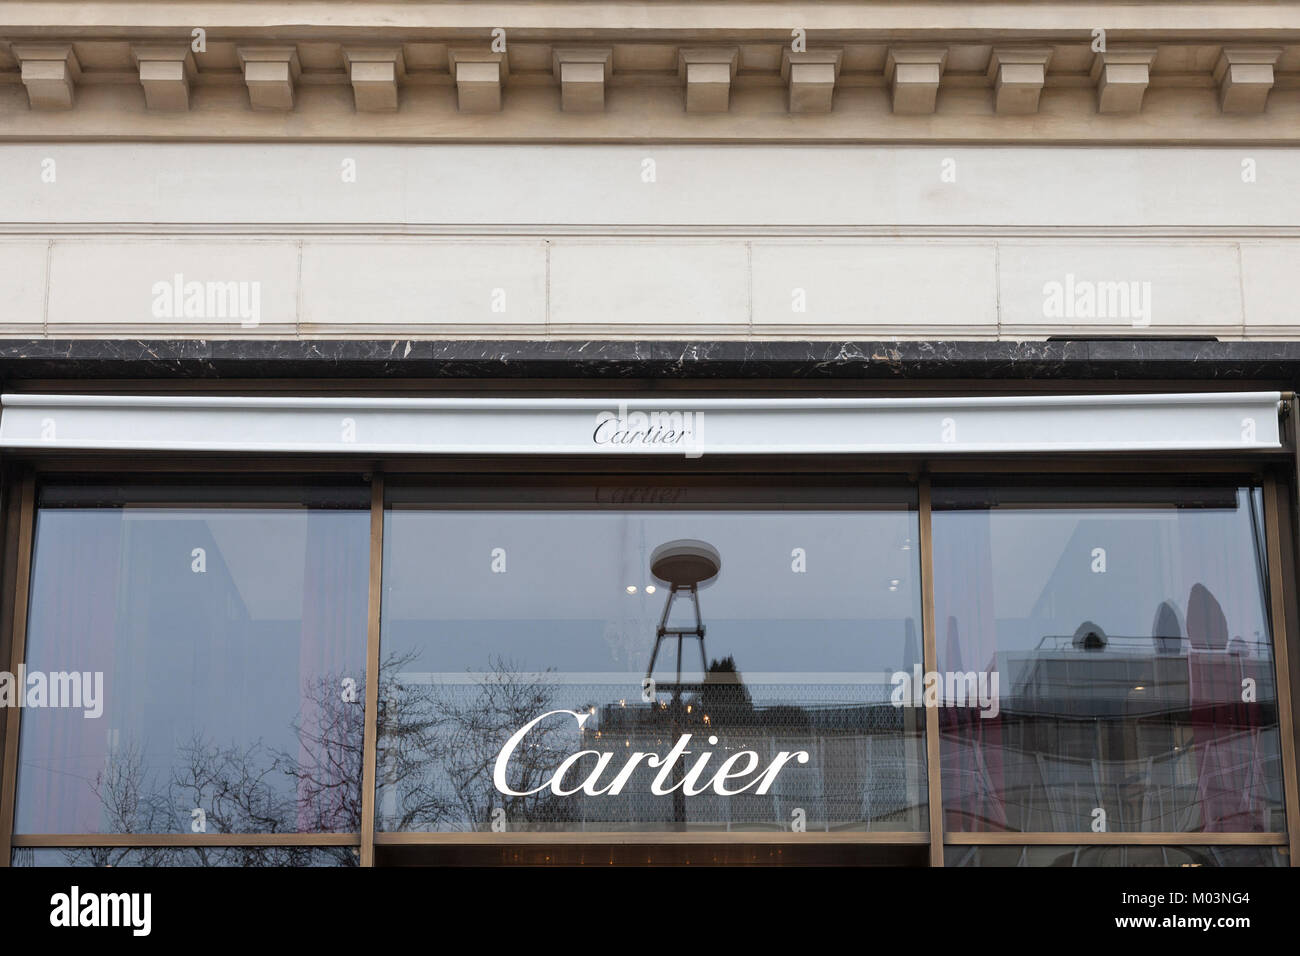 PARIS, FRANCE - DECEMBER 20, 2017: Cartier logo on their main shop on Champs Elysee avenue. Cartier is a French - Stock Image